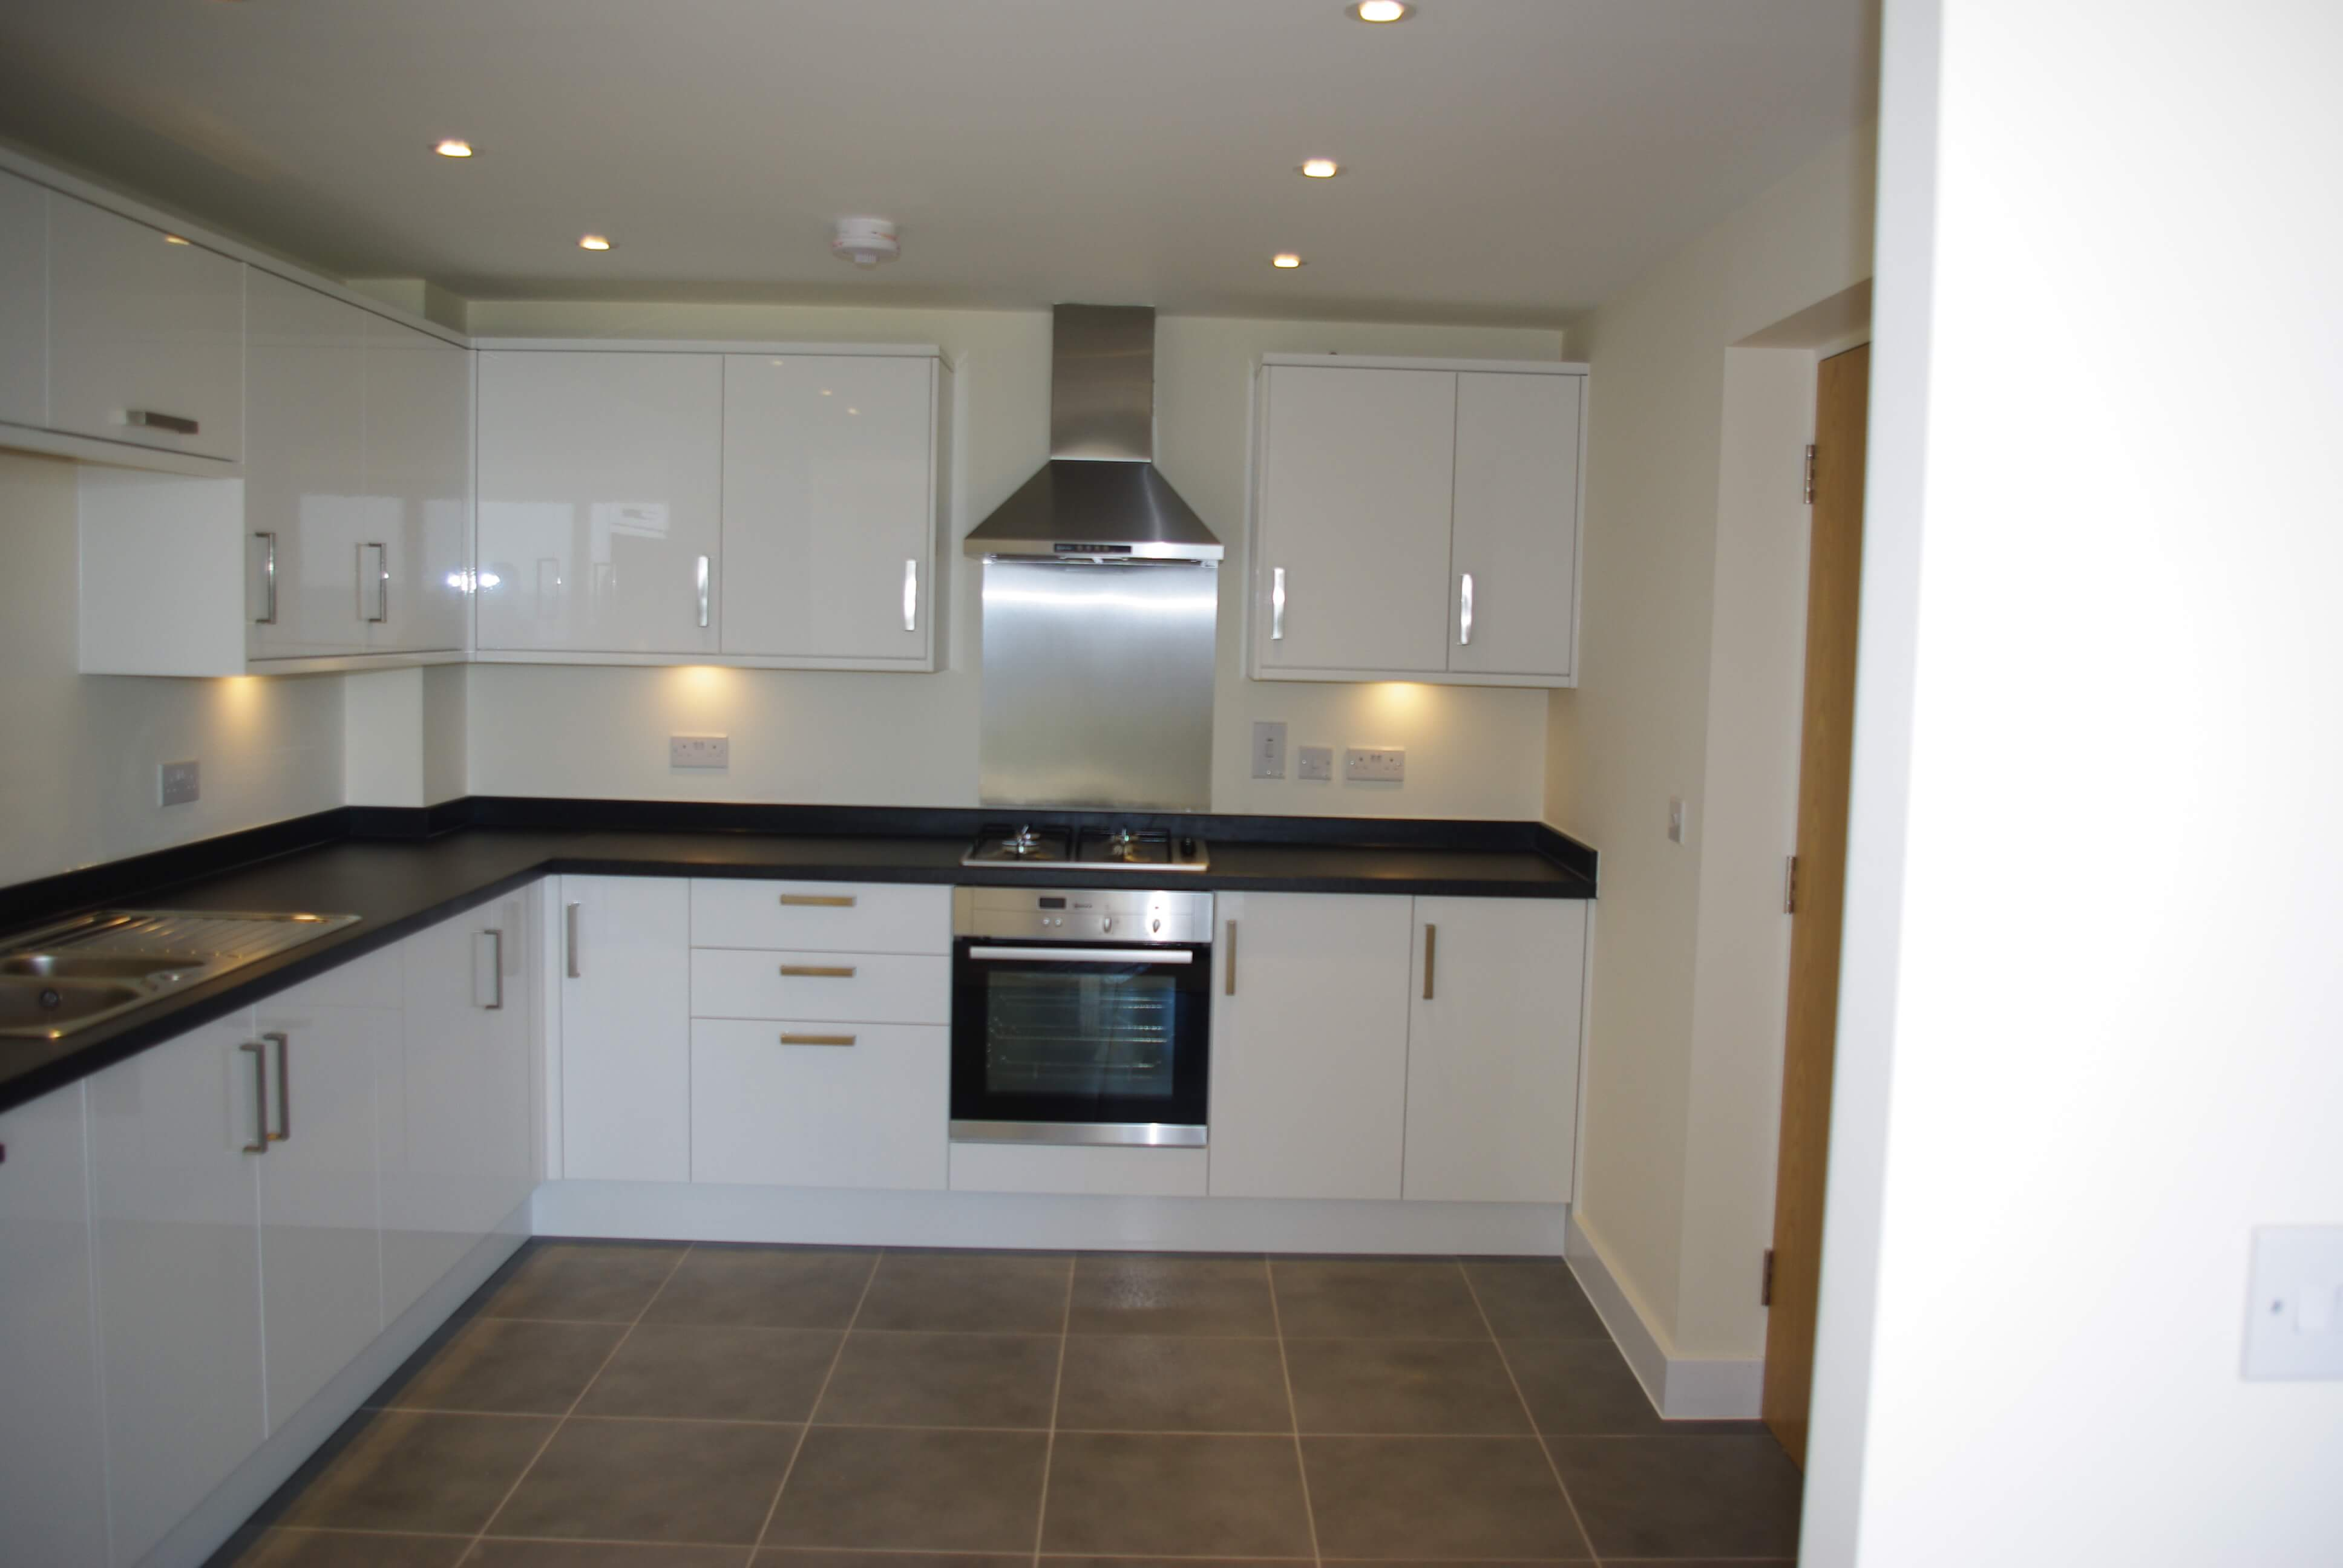 Another example of one of our new build kitchens